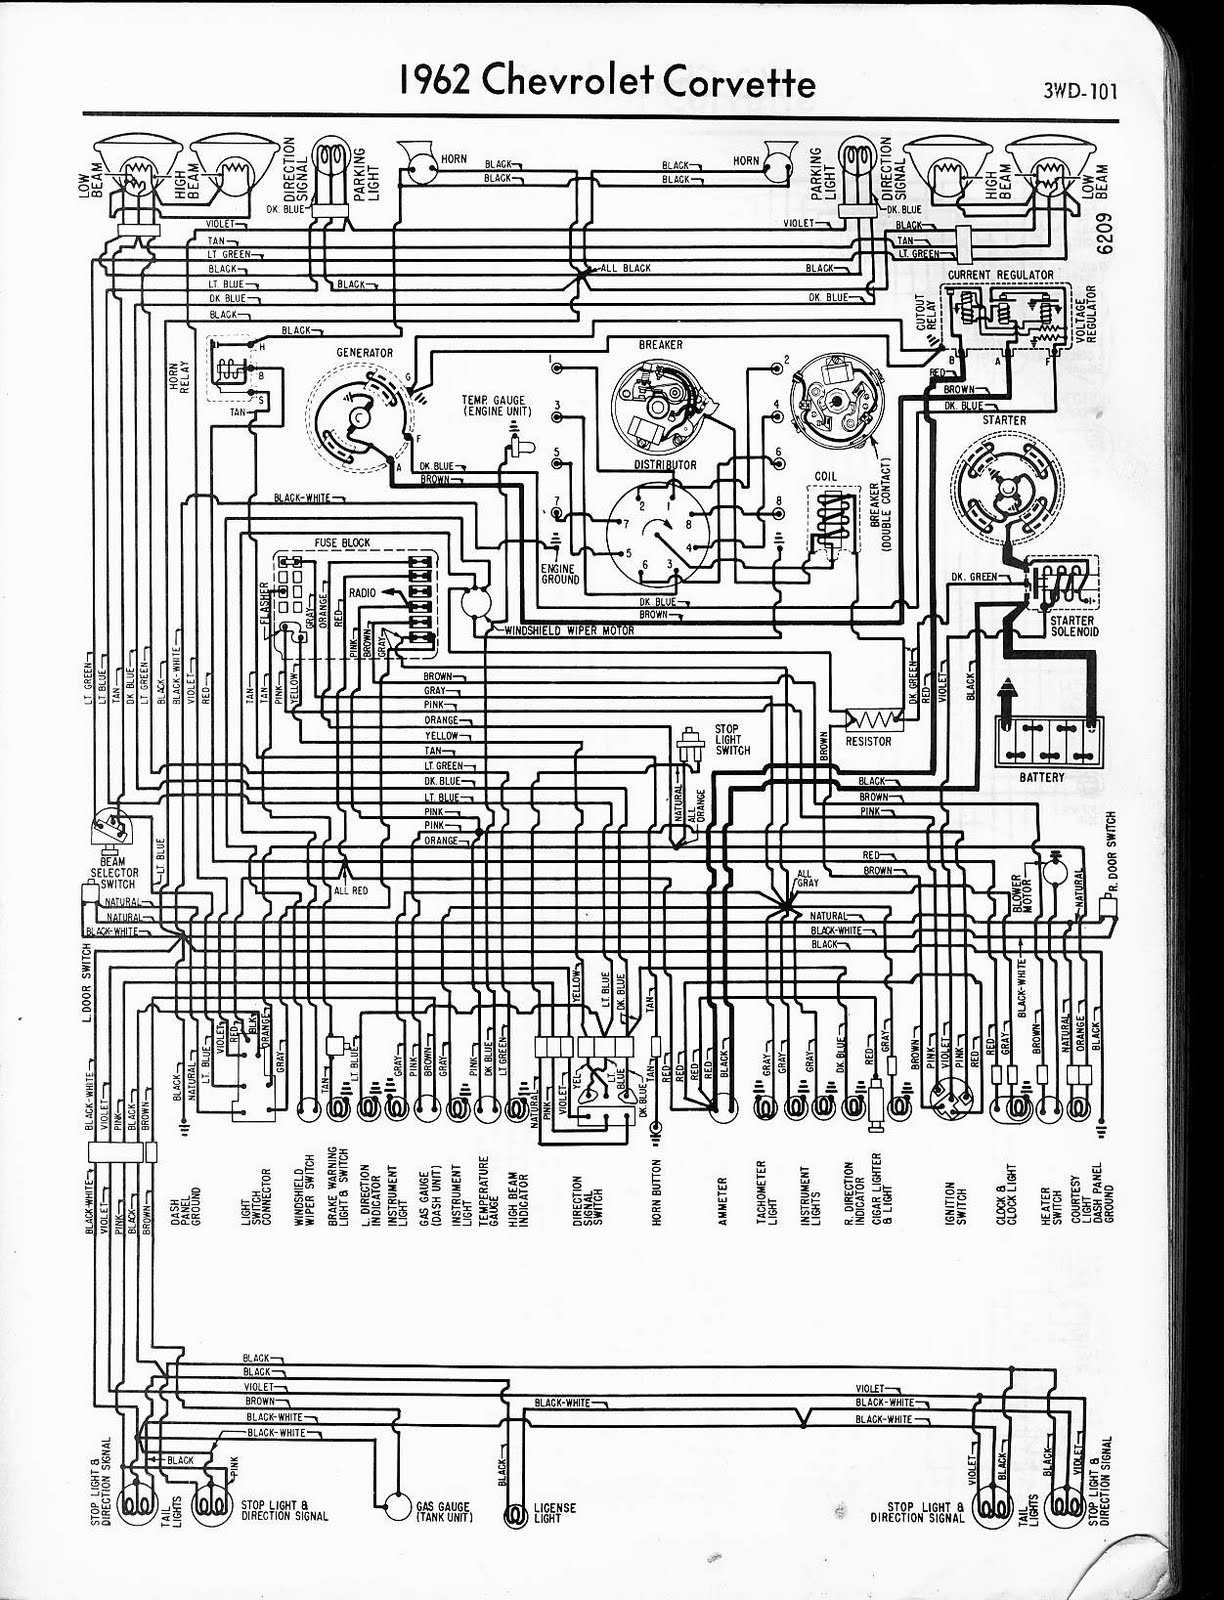 Home Audio System Wiring Diagram Decorating Interior Of Your House Gas Tank Free Auto 1962 Chevrolet Corvette